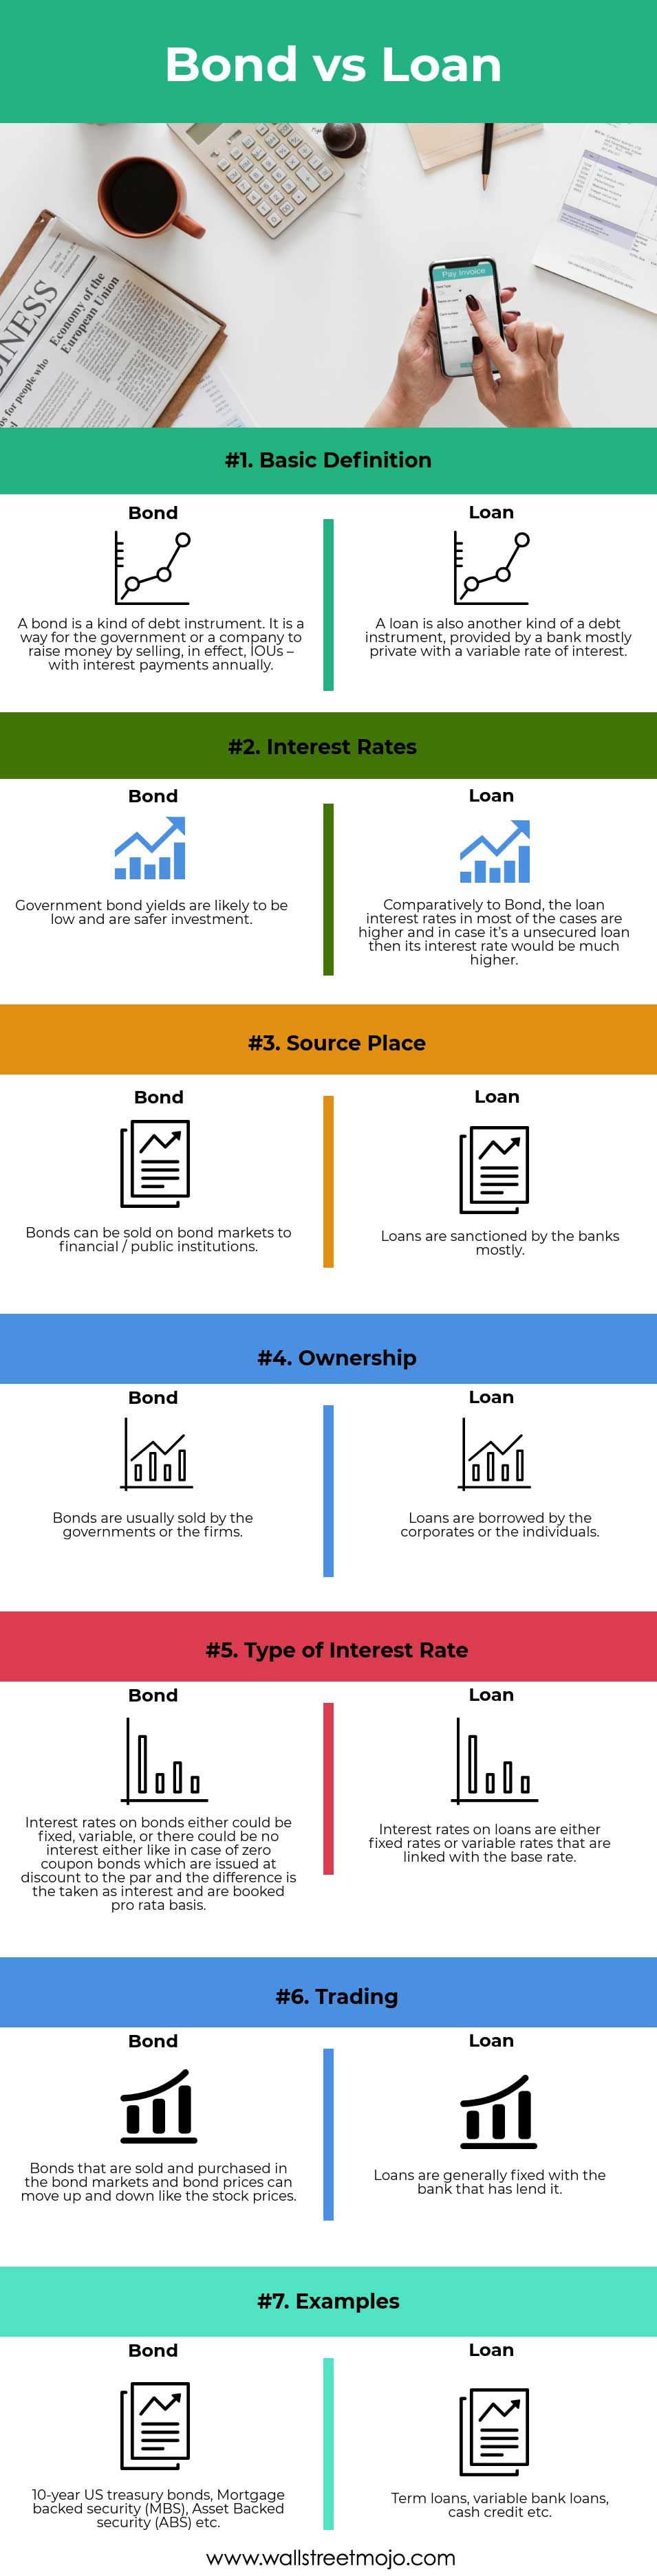 Bond Vs Loan Head To Head Difference Loan Infographic Bond